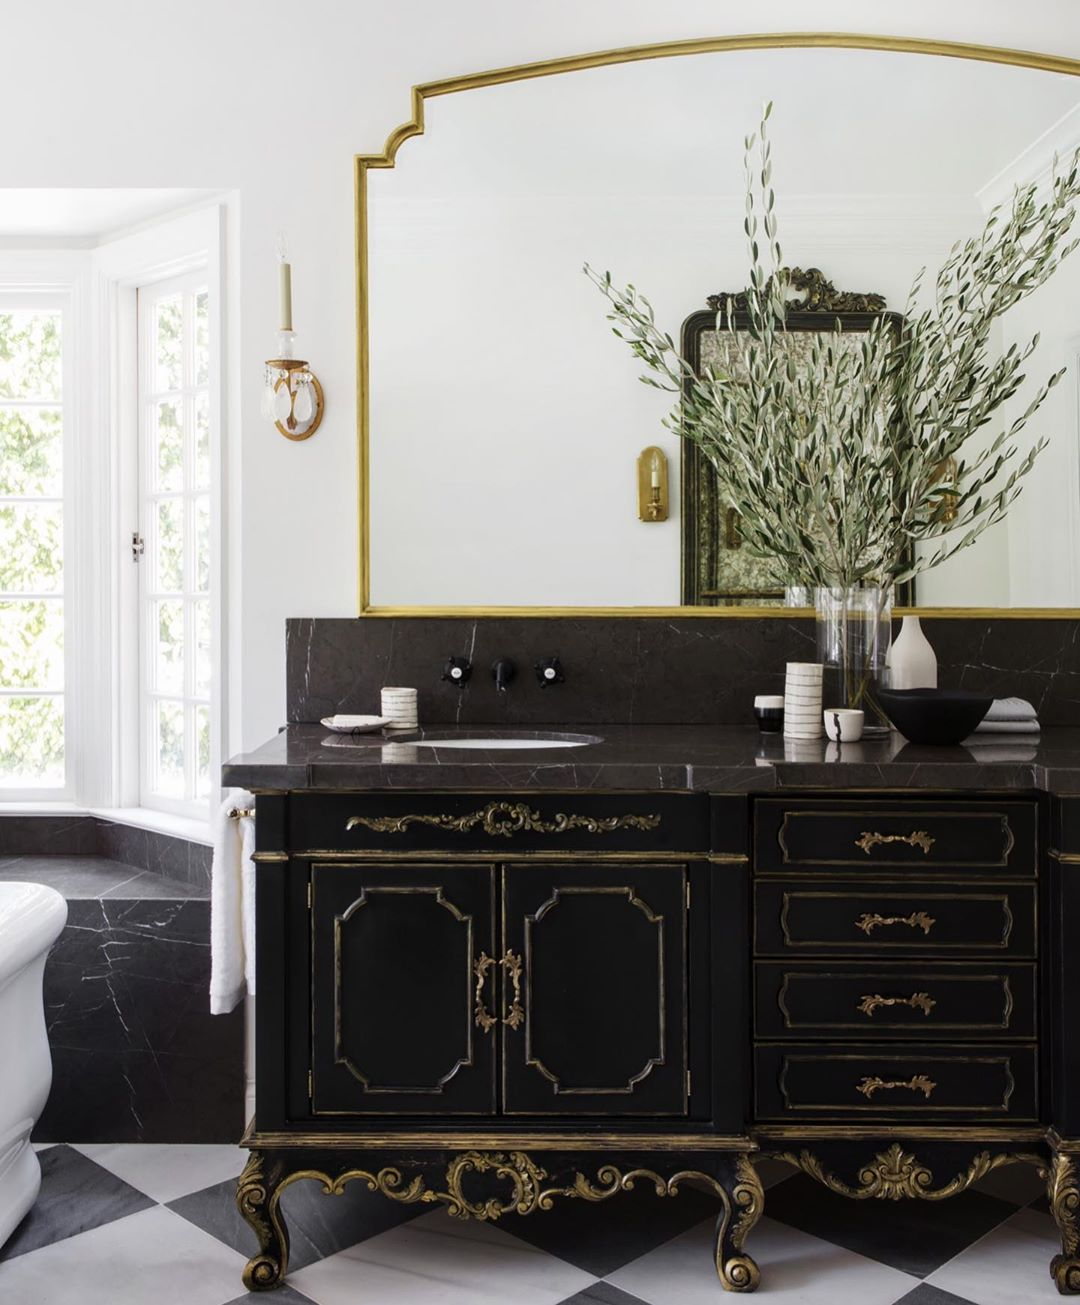 14 Gorgeous Diy Bathroom Vanity Ideas